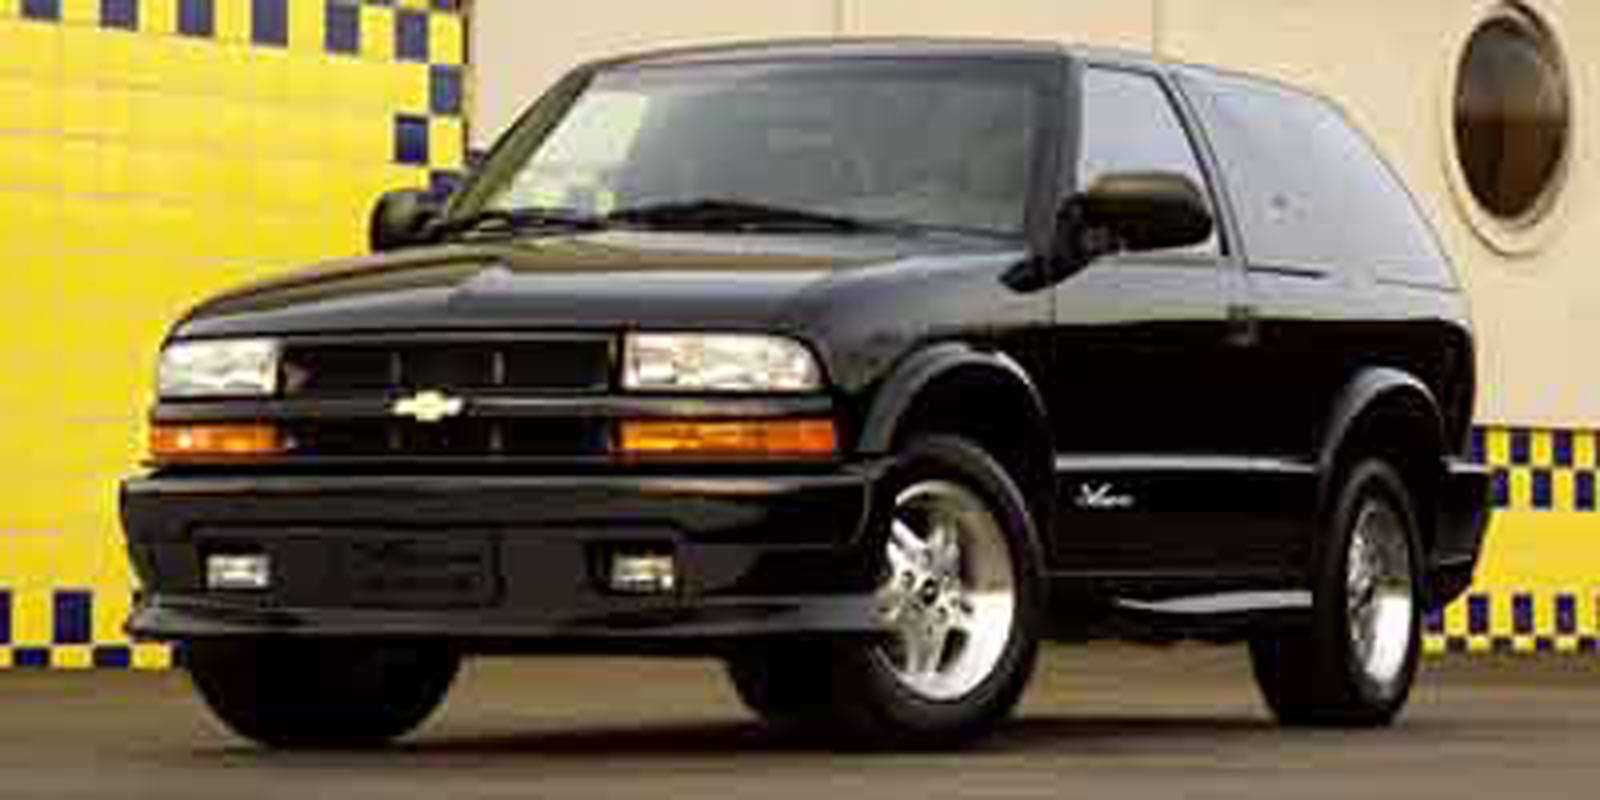 Chevrolet Blazer Information And Photos Momentcar 2001 Chevy Wiring Diagram Parts Xtreme 13